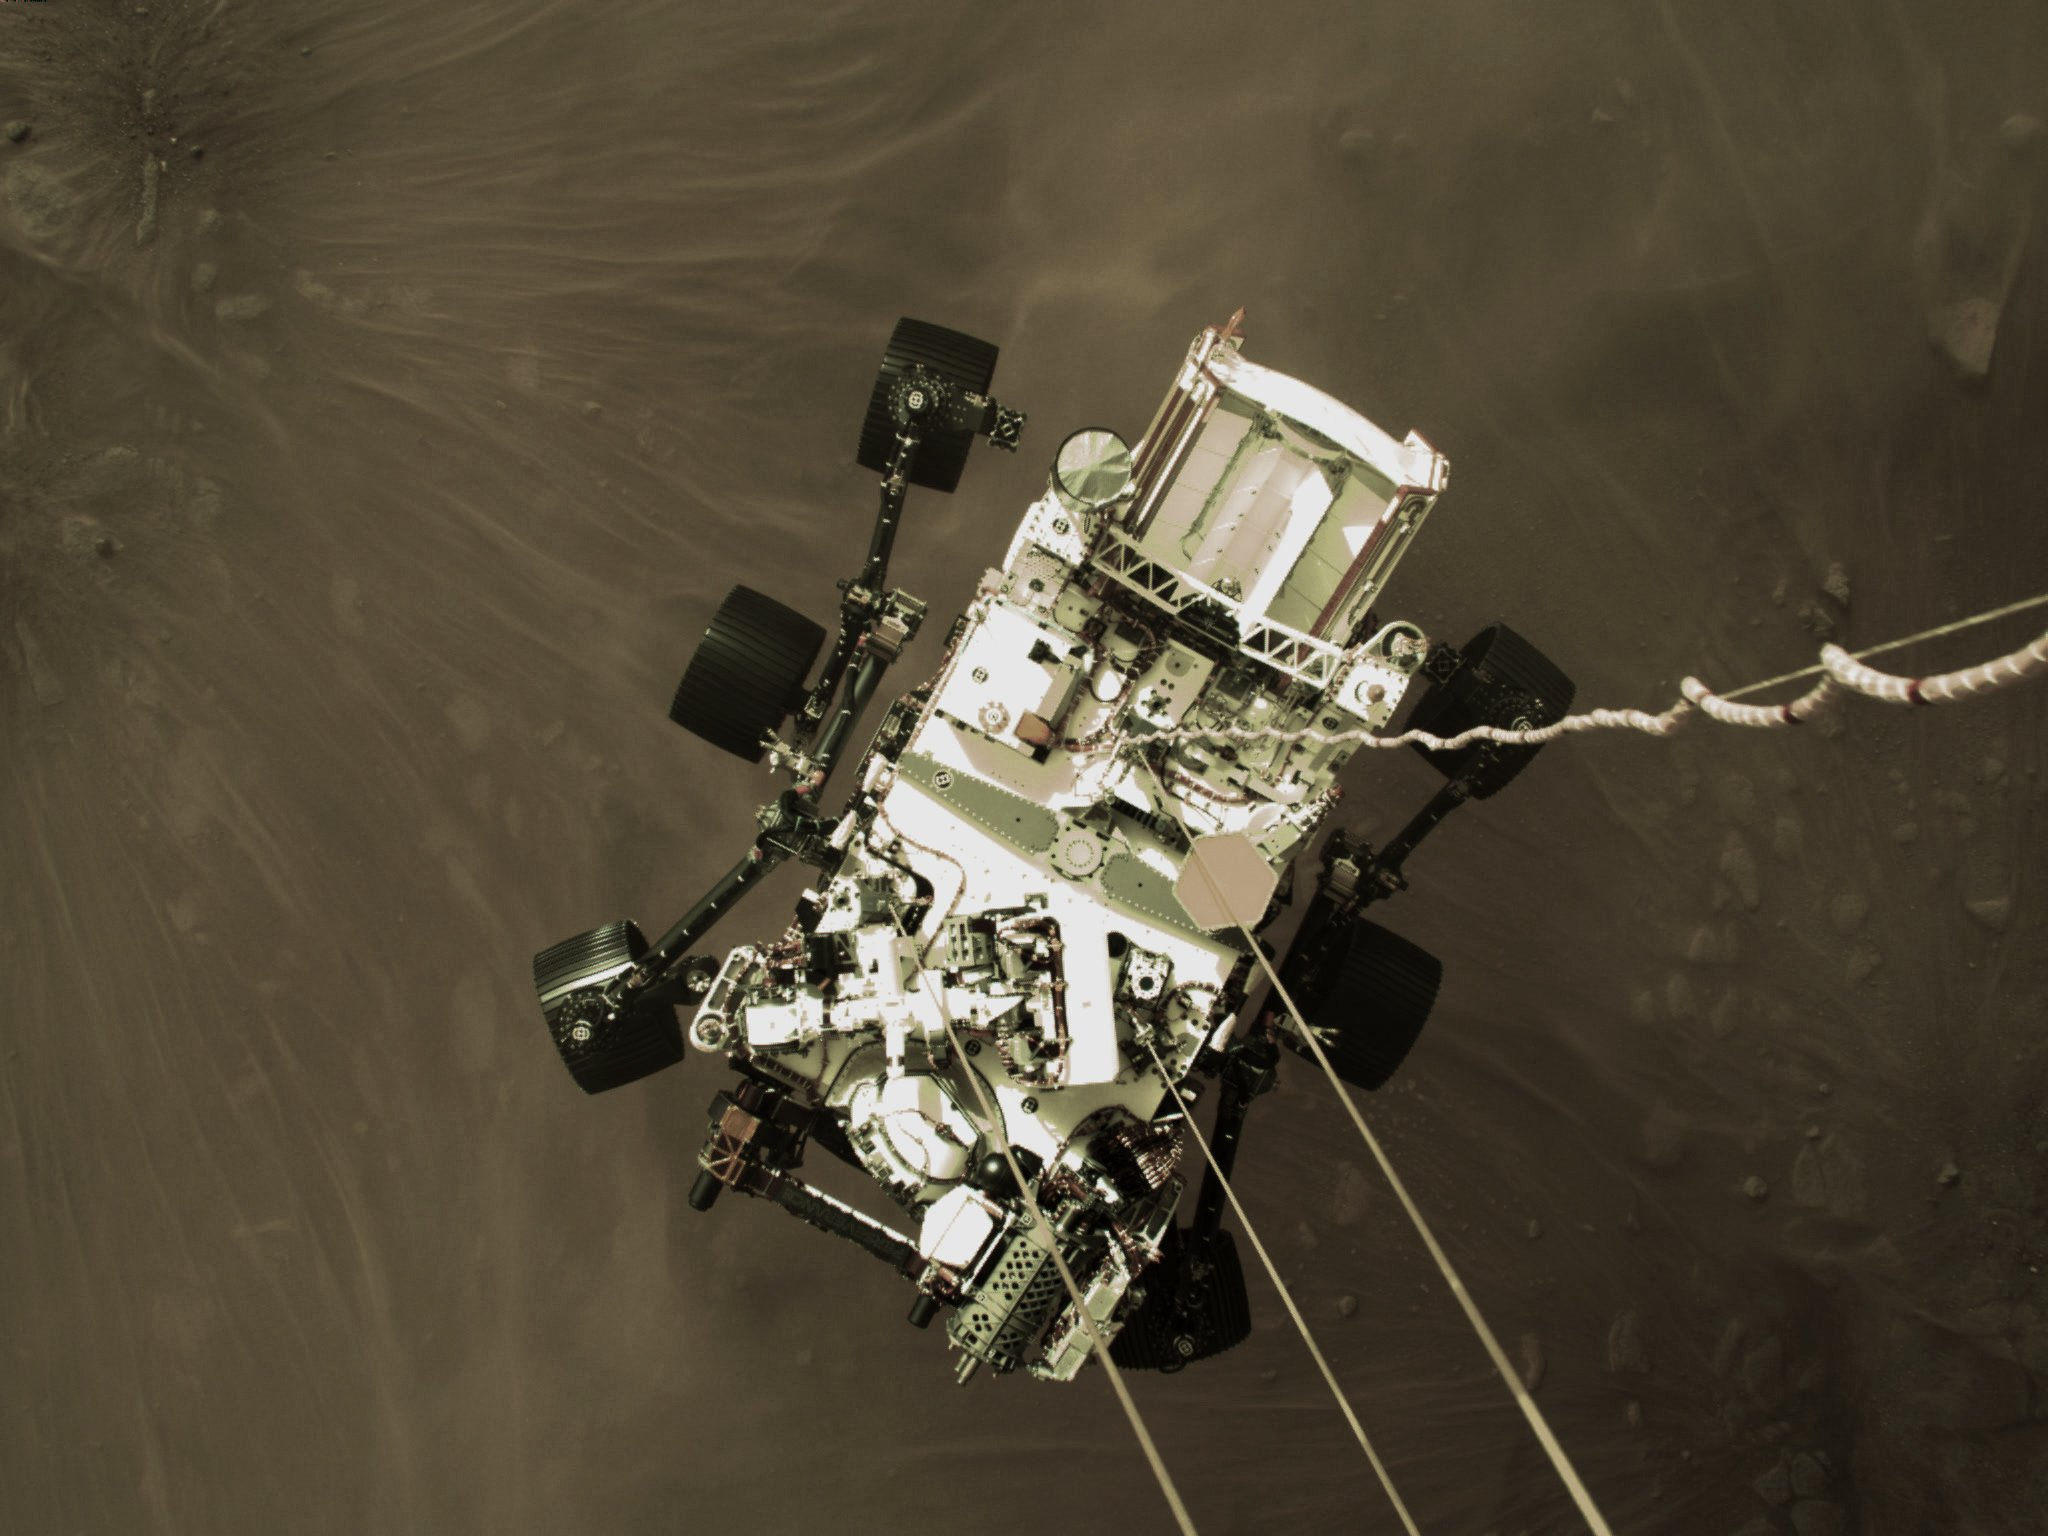 image of rover dangling above Mars surface